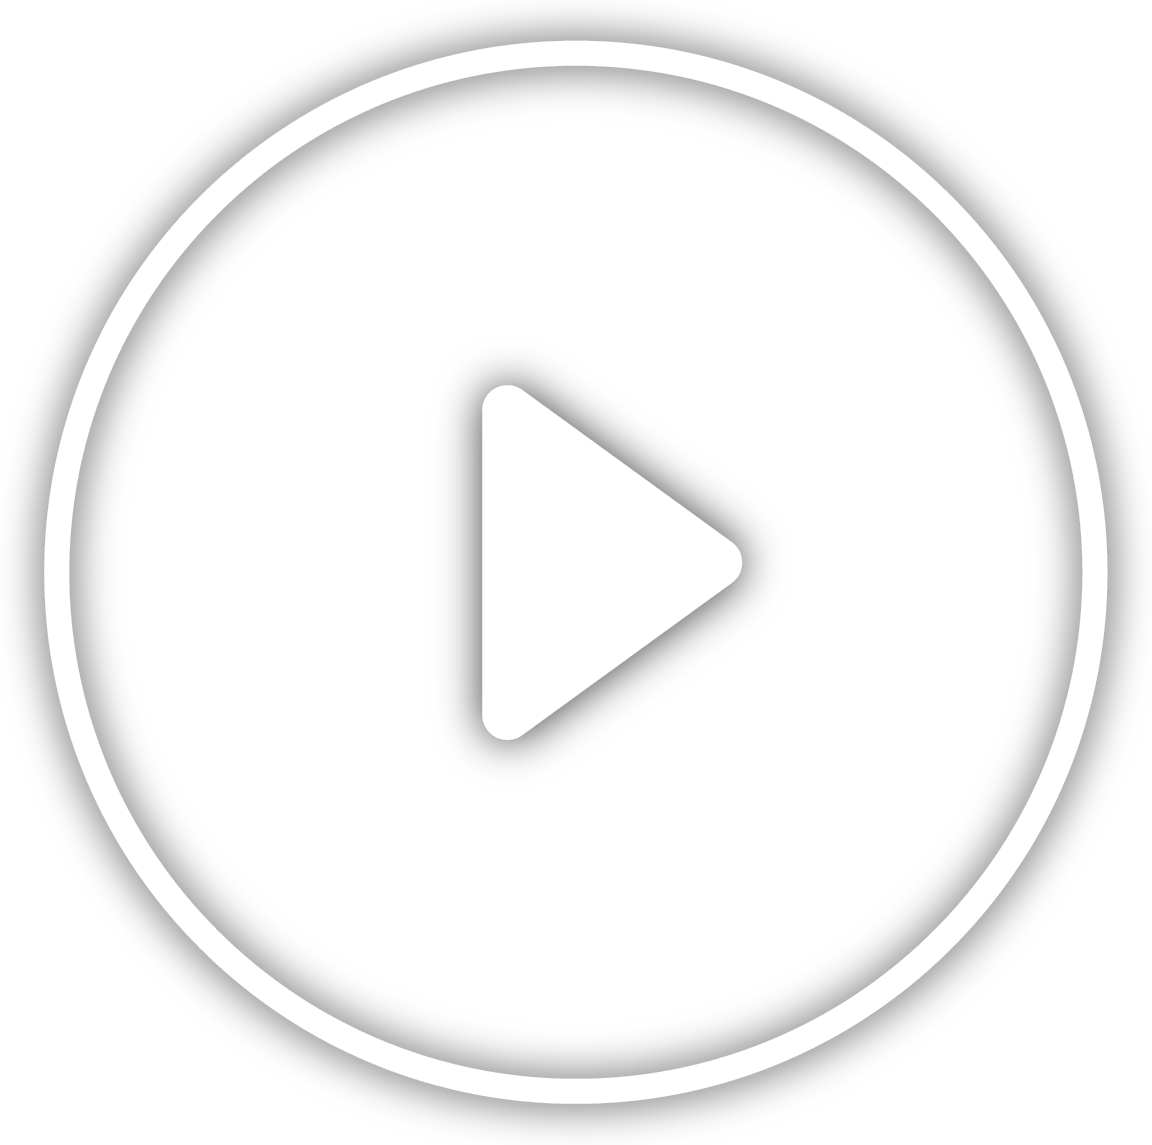 Video Play Icon with Shadow 2-01.png